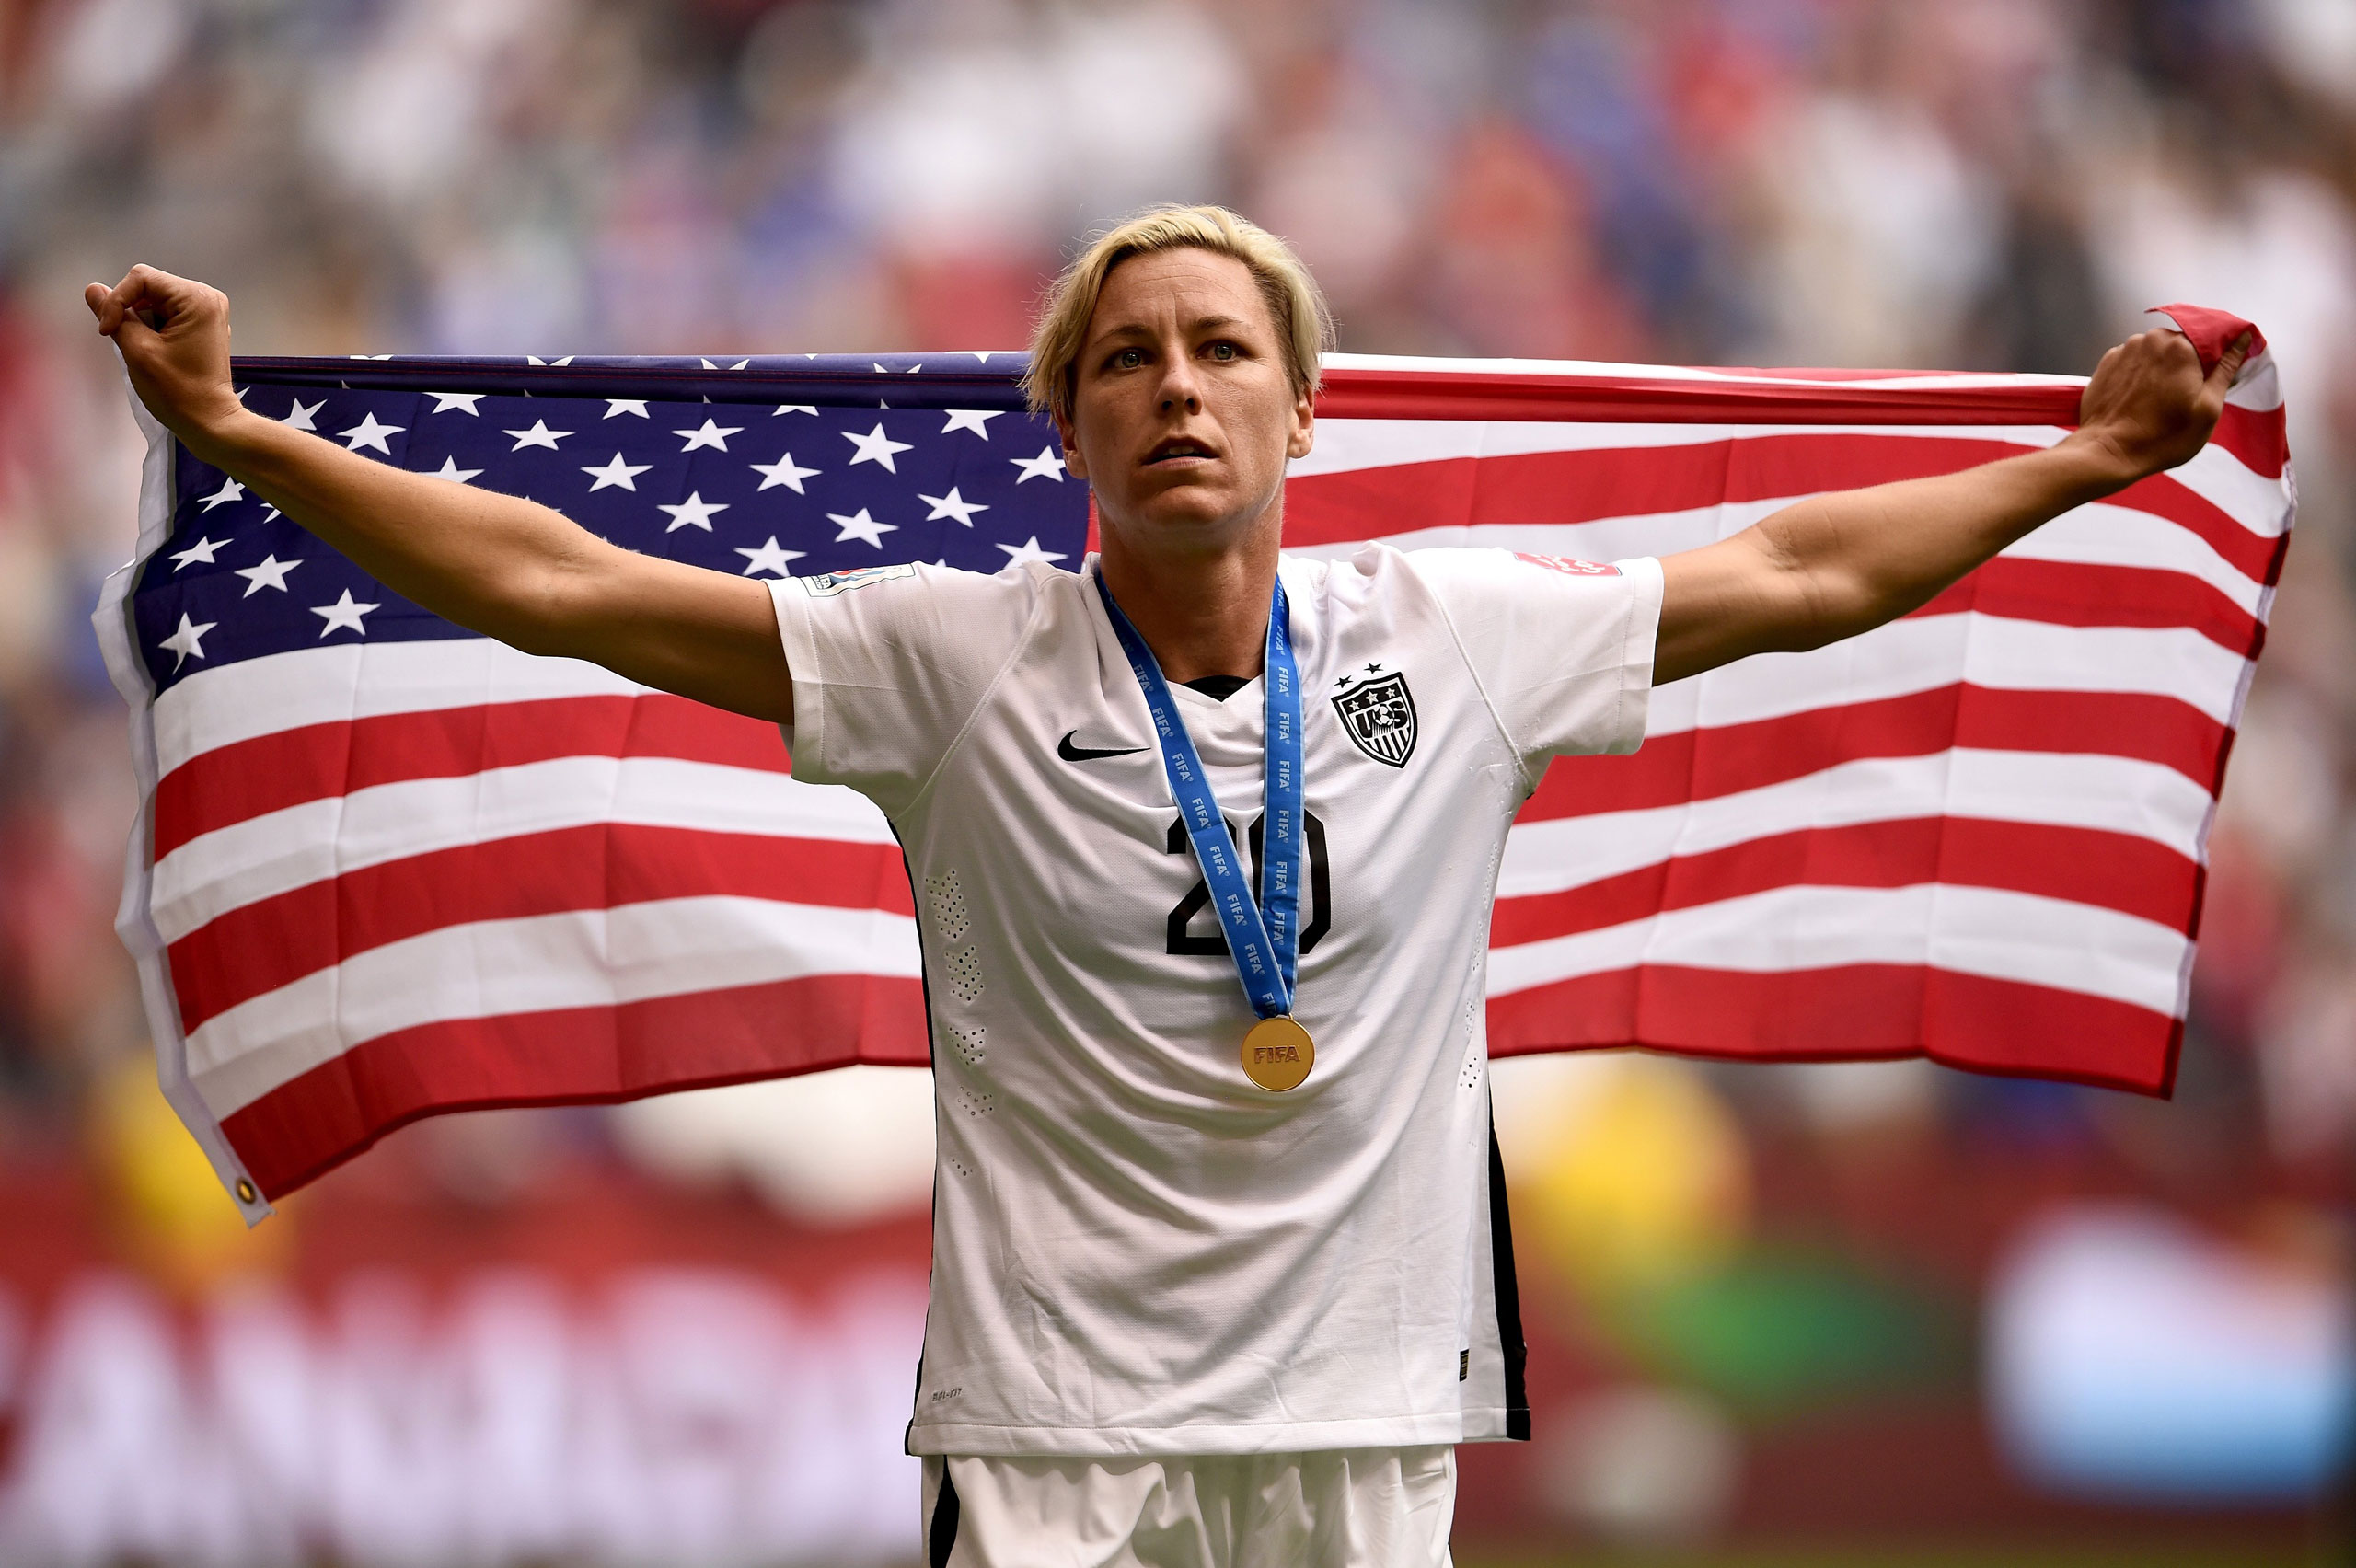 Abby Wambach celebrates the 5-2 victory against Japan in the final match of the 2015 FIFA Women's World Cup at the BC Place Stadium in Vancouver on July 5, 2015.